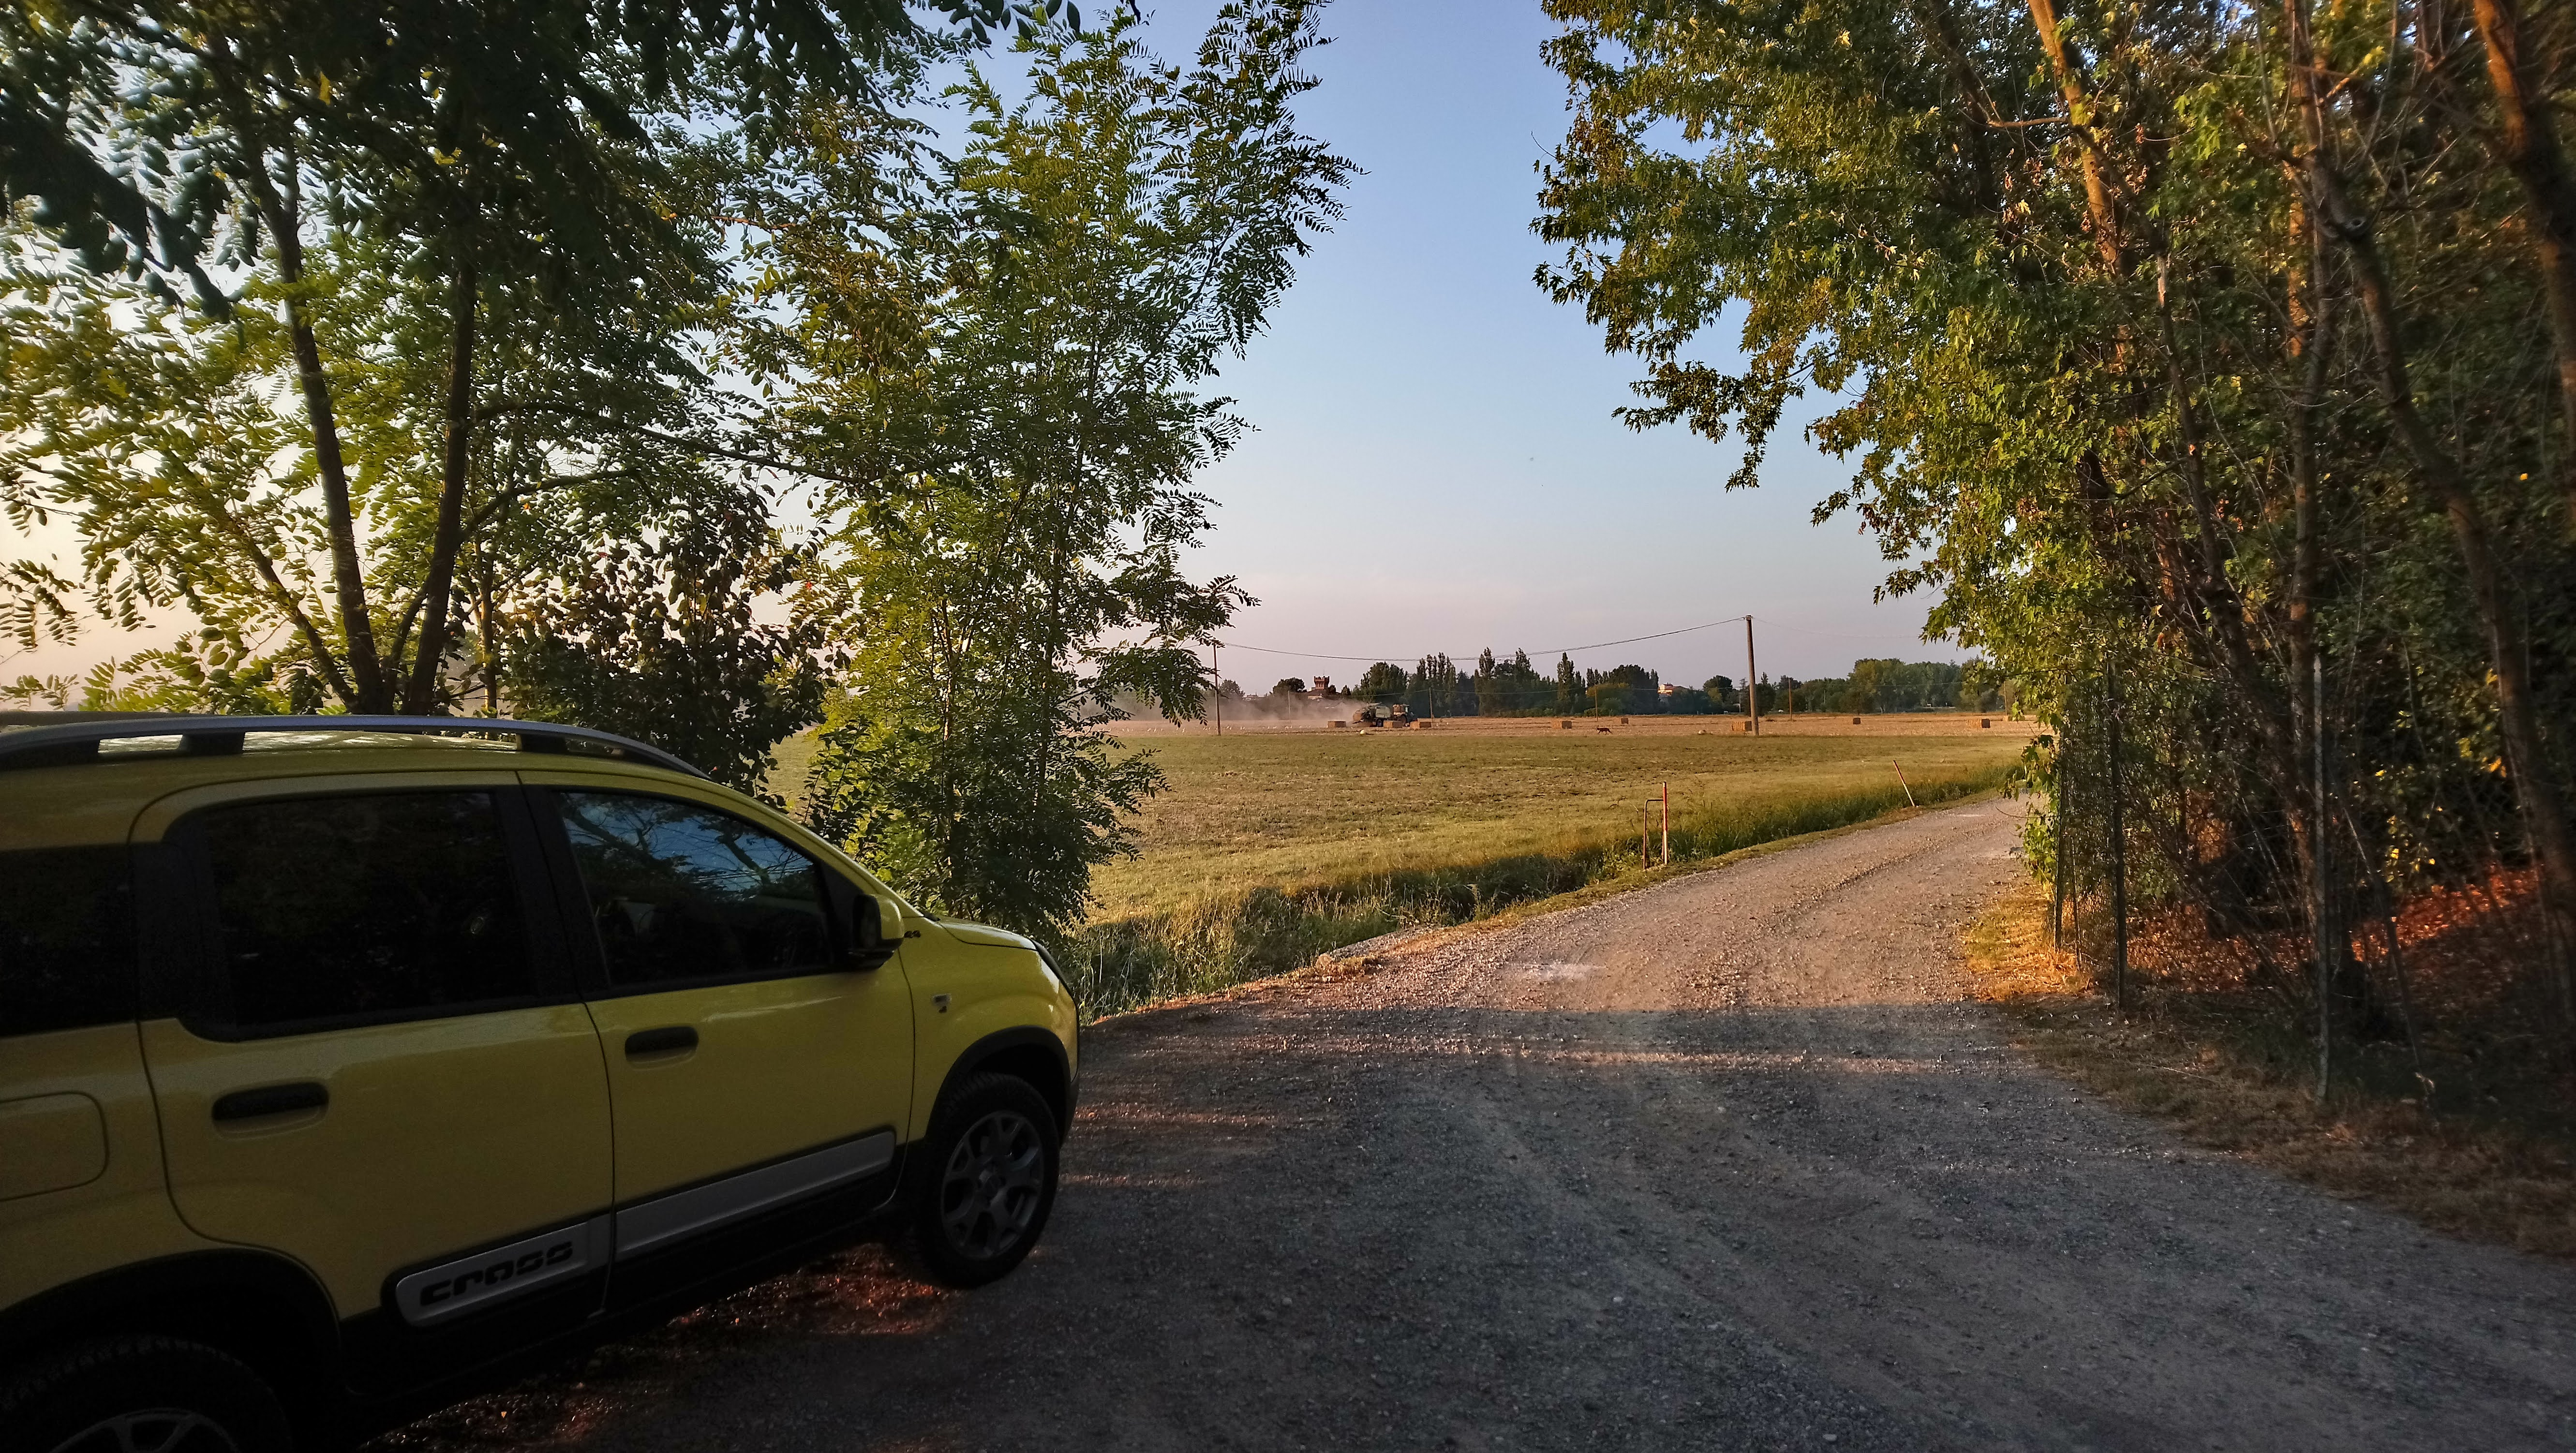 Click image for larger version  Name:rural Modena.jpg Views:11 Size:3.22 MB ID:220304